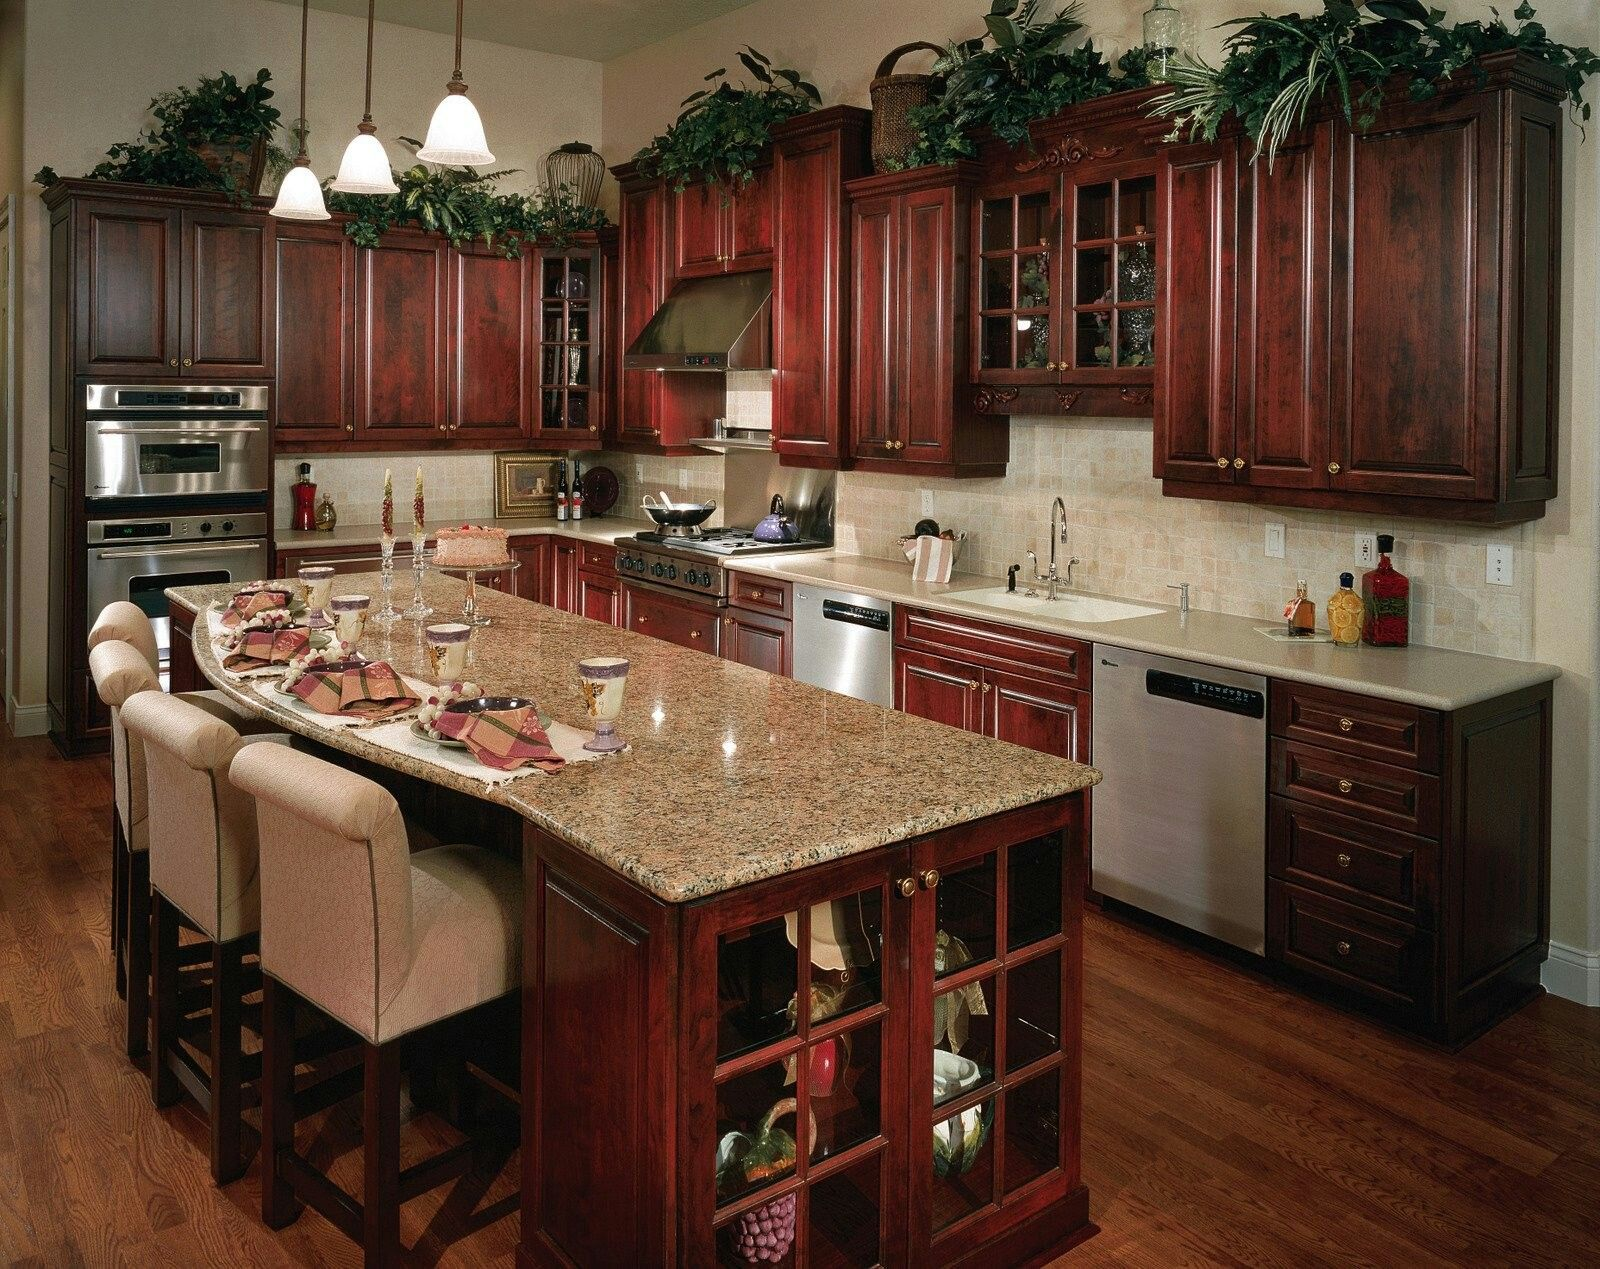 Pin By Kelly Sinn On Kitchens Decorating Above Kitchen Cabinets Mahogany Kitchen Kitchen Cabinets Decor